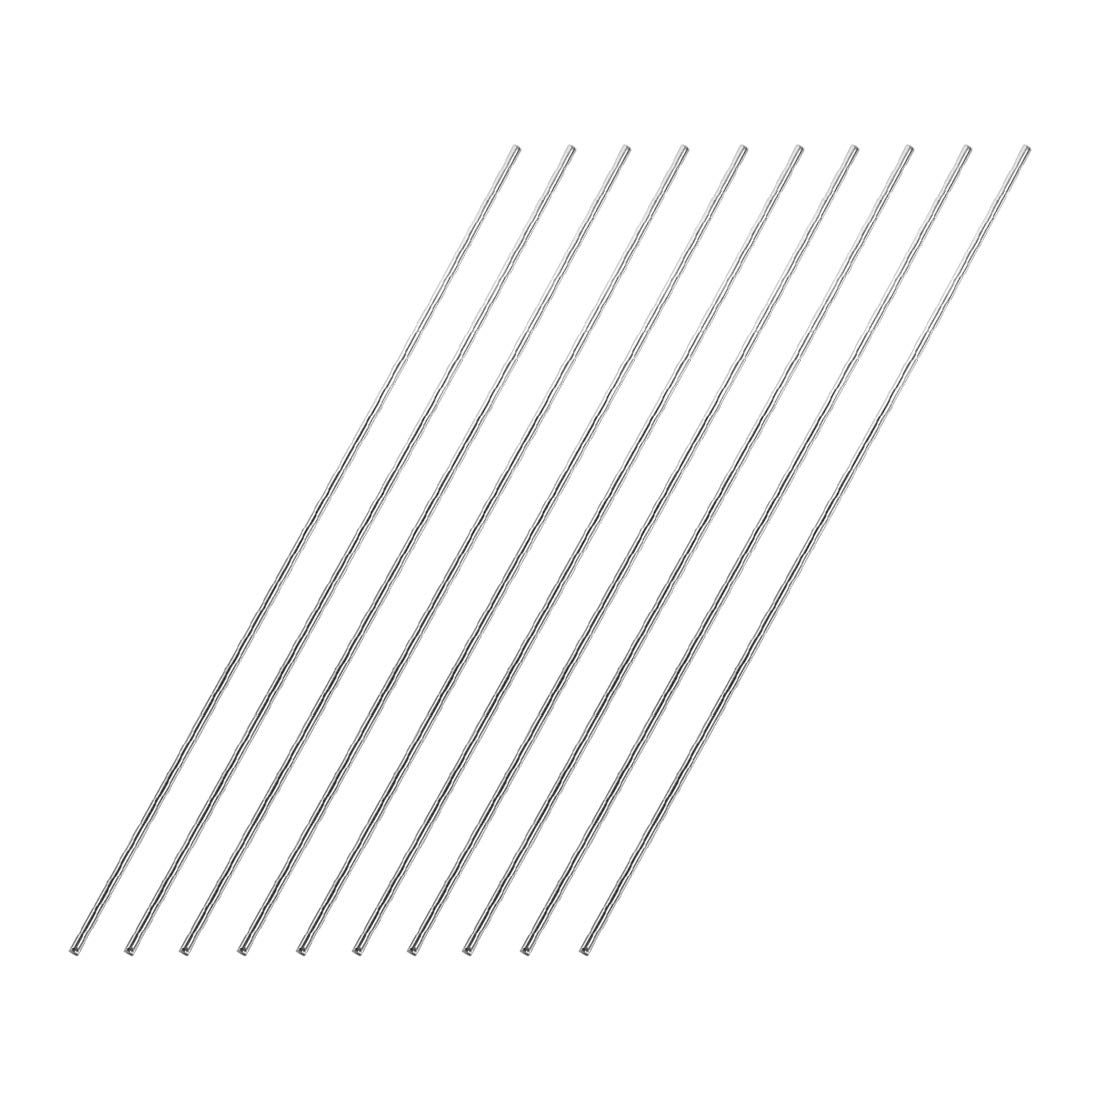 sourcing map 1.5mm x 200mm 304 Stainless Steel Solid Round Rod for DIY Craft 10pcs